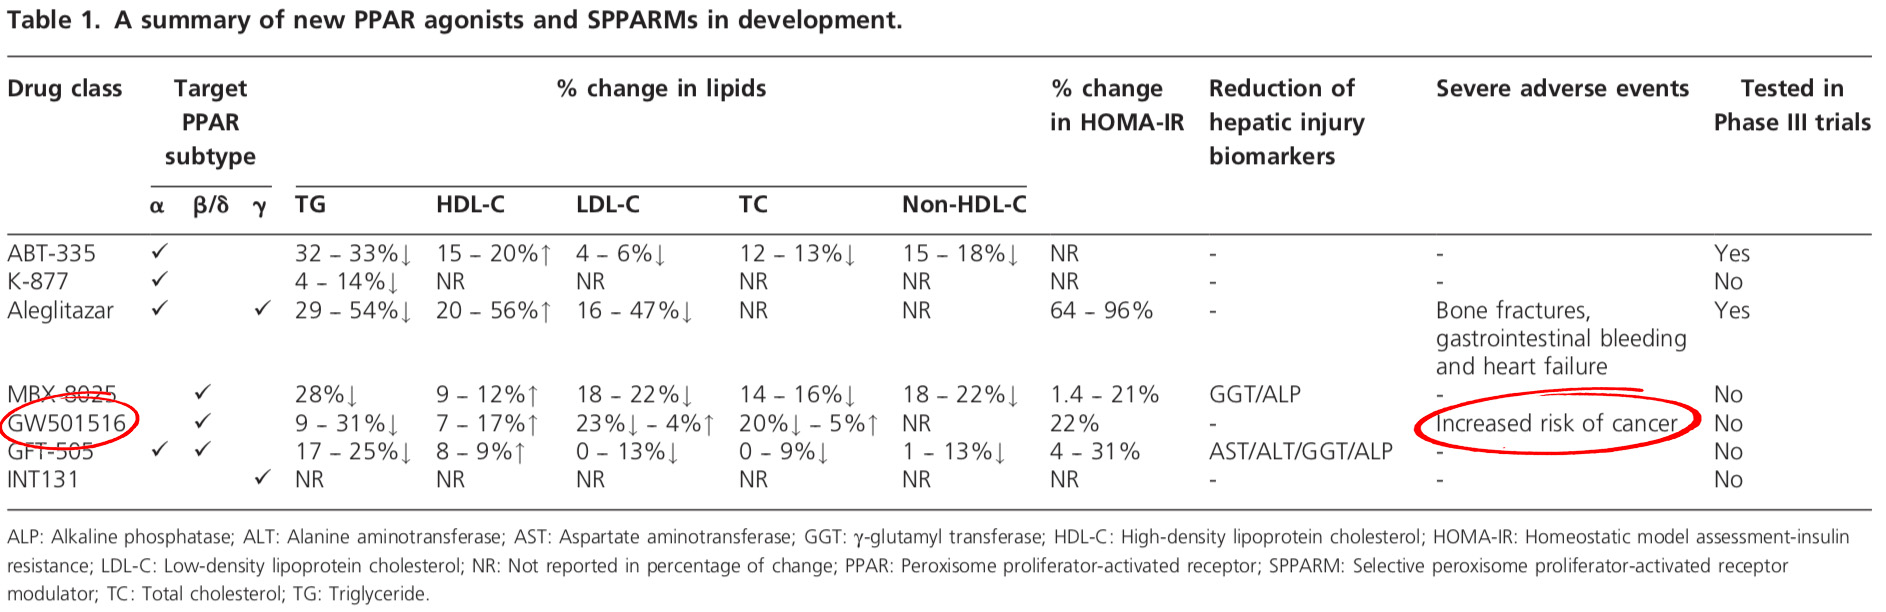 A summary of new PPAR agonists and SPPARMs in development